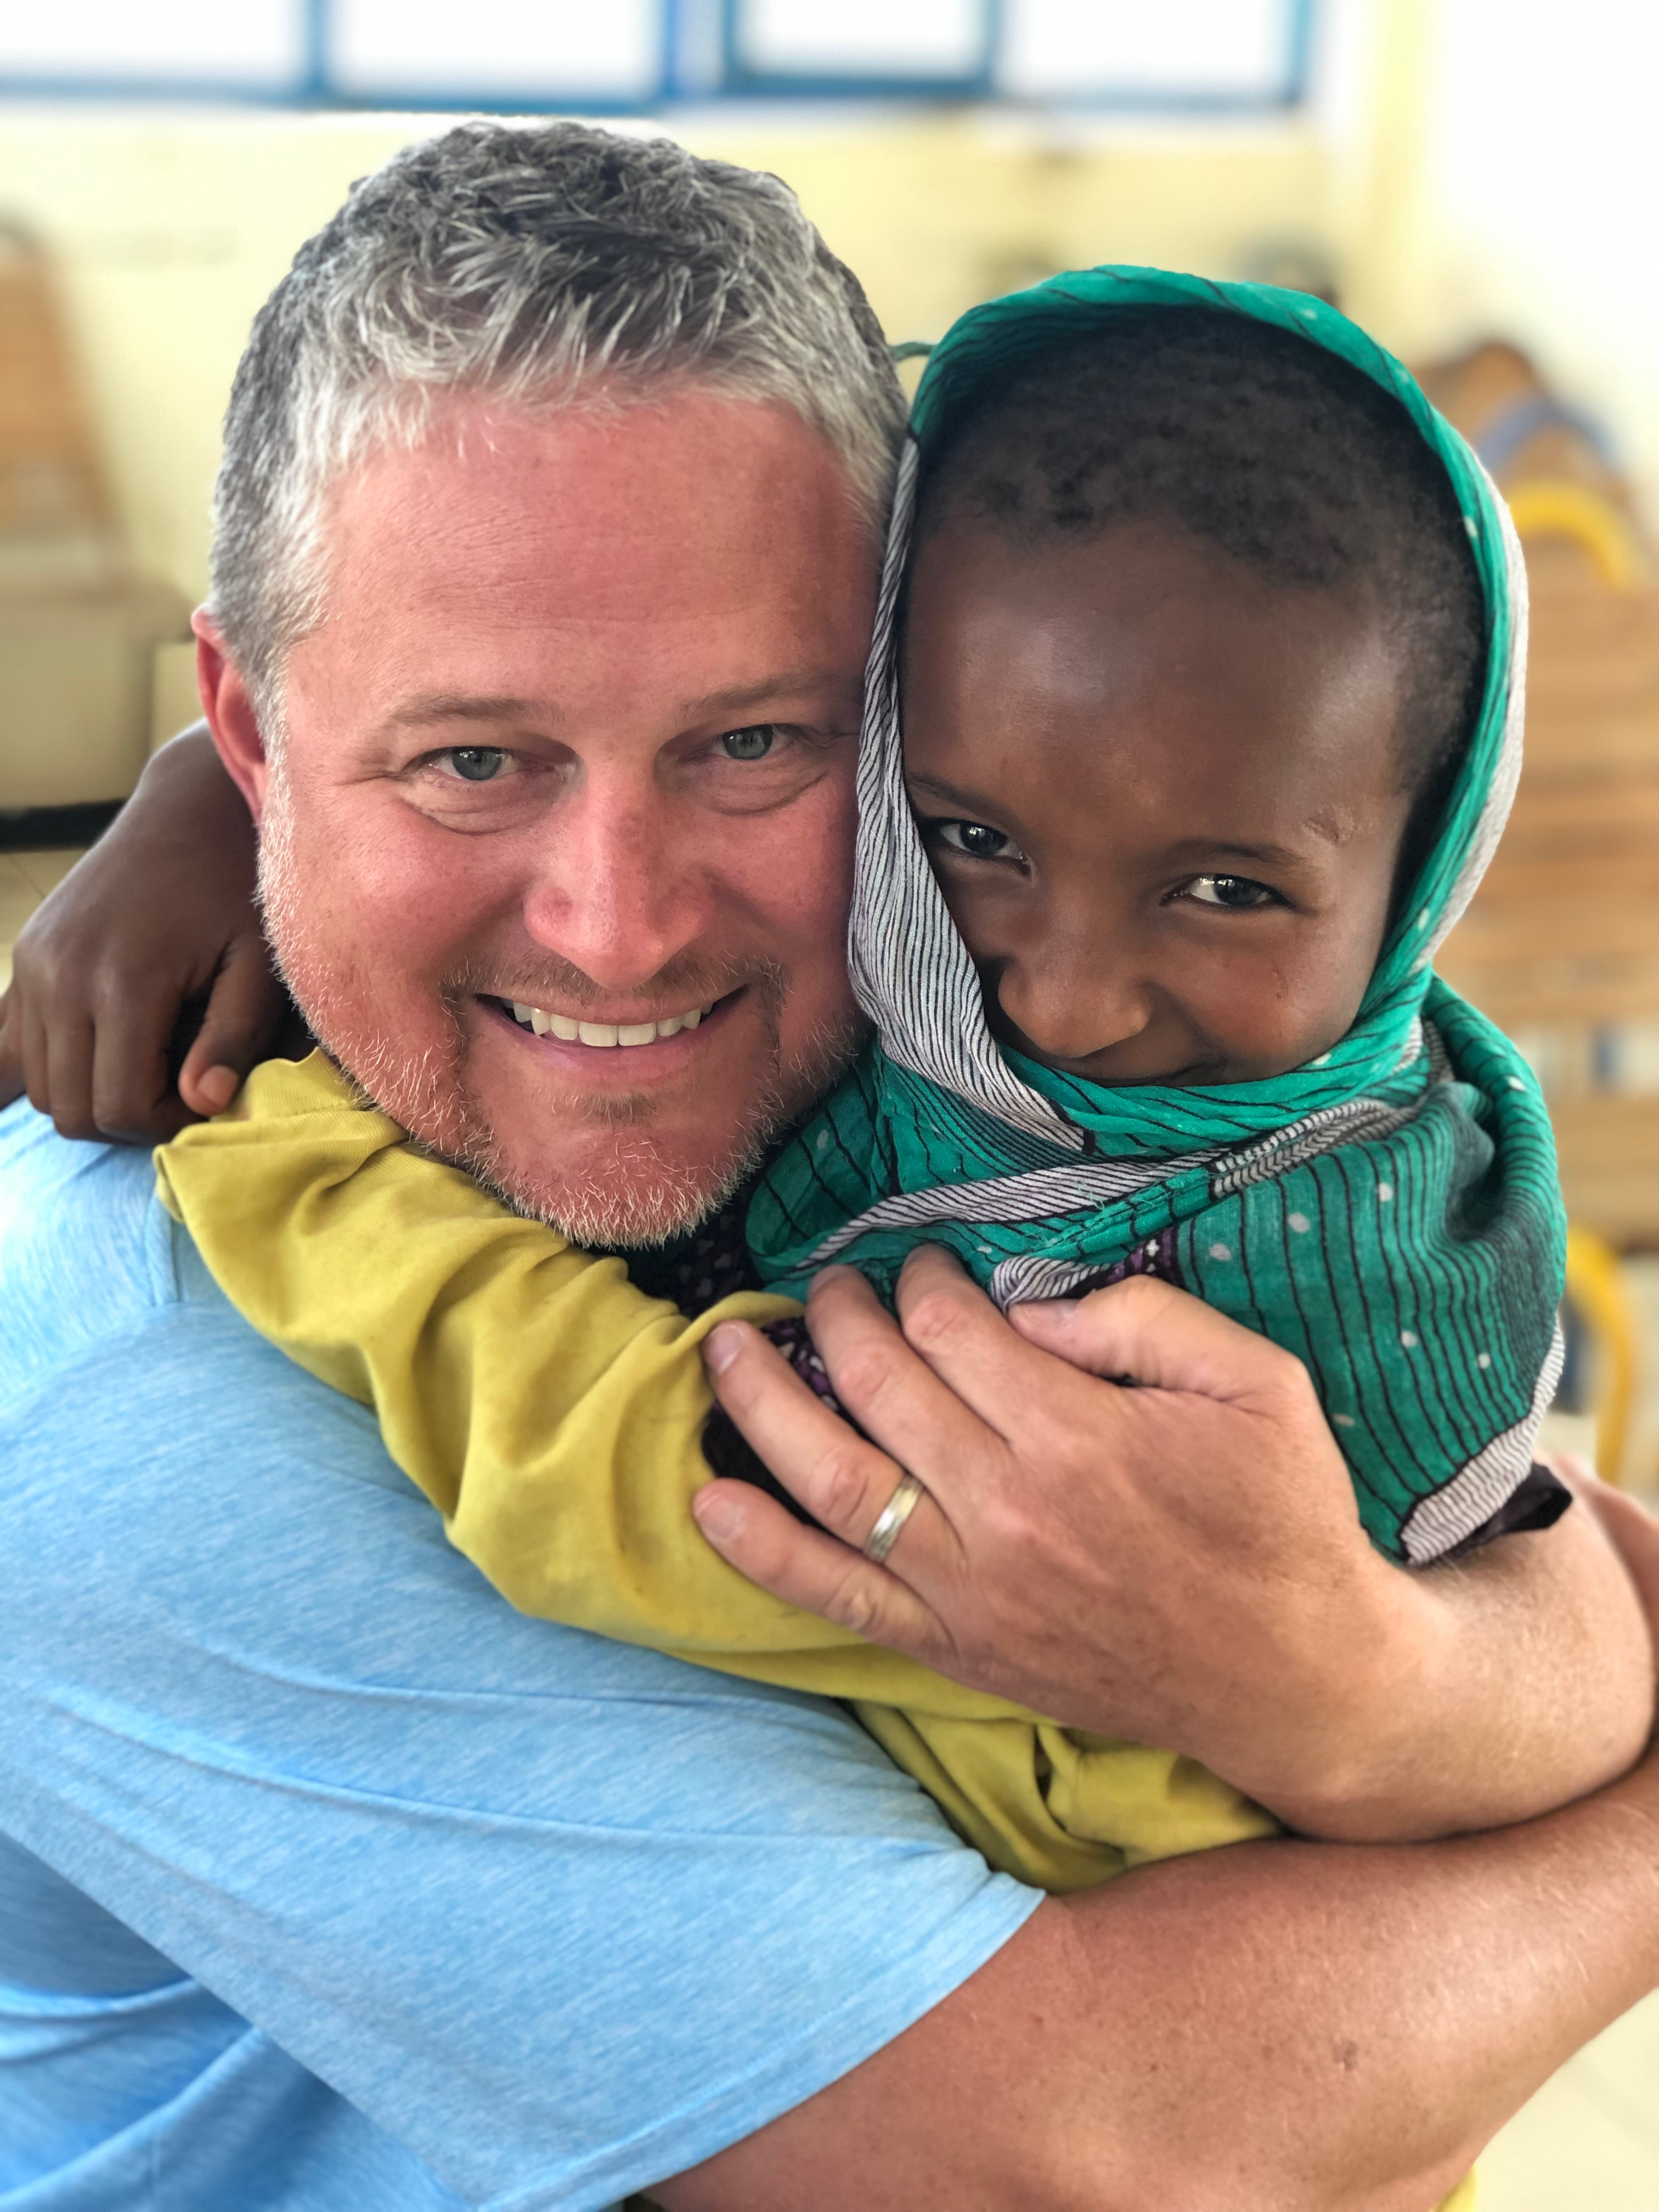 How Dr. Dunn Helped Erzik in Ethiopia